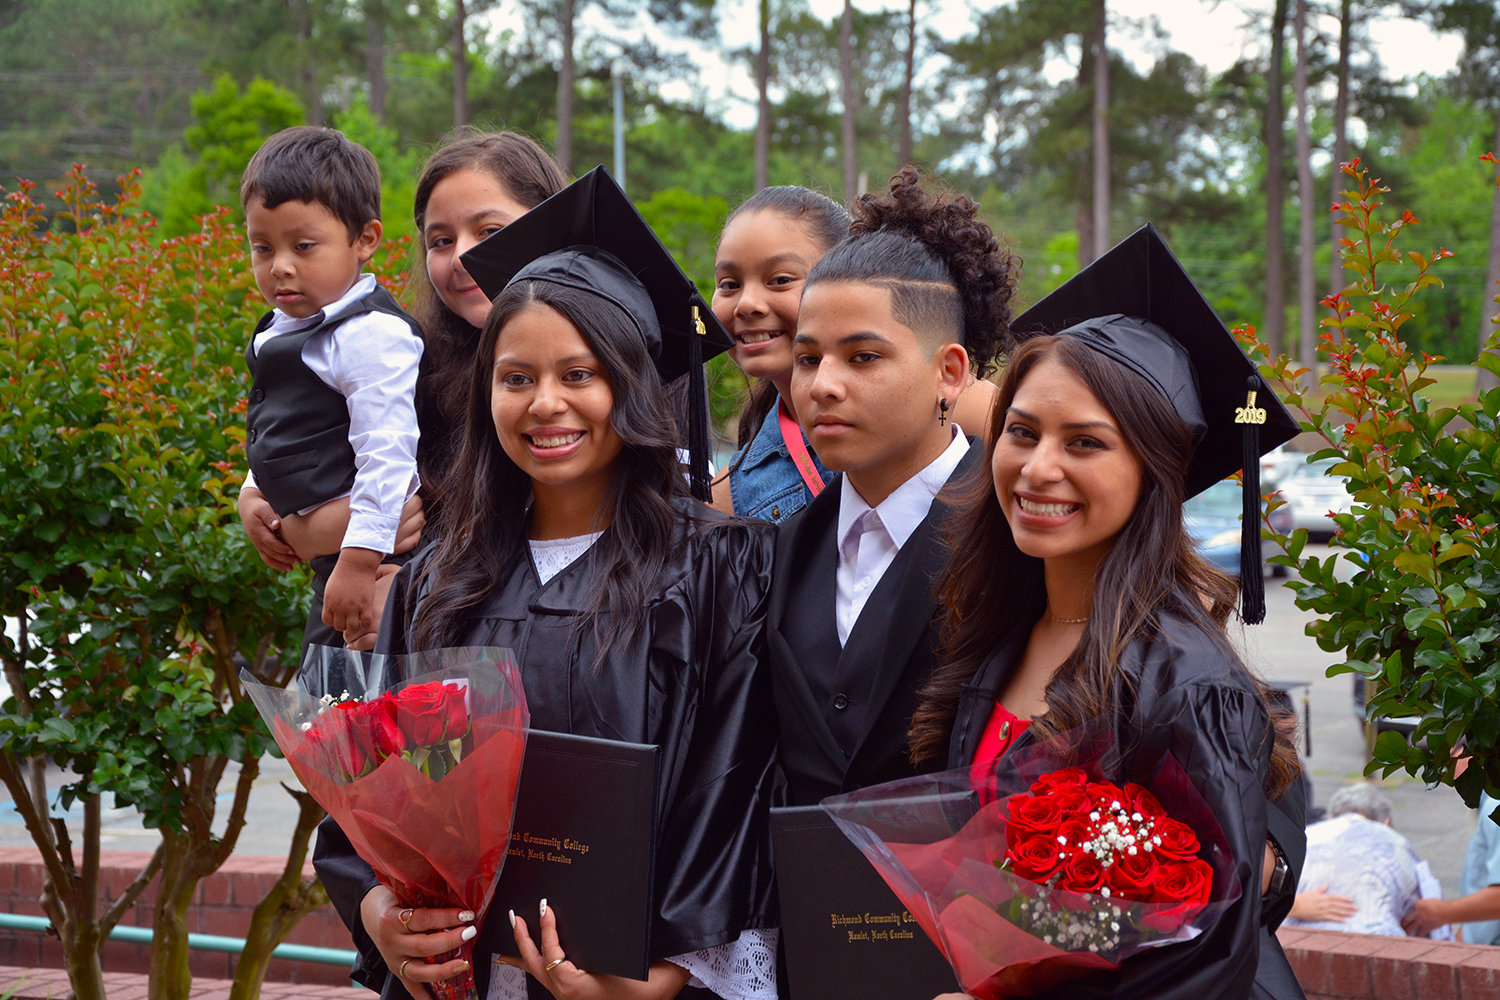 Two graduates stand with family members after the graduation ceremony